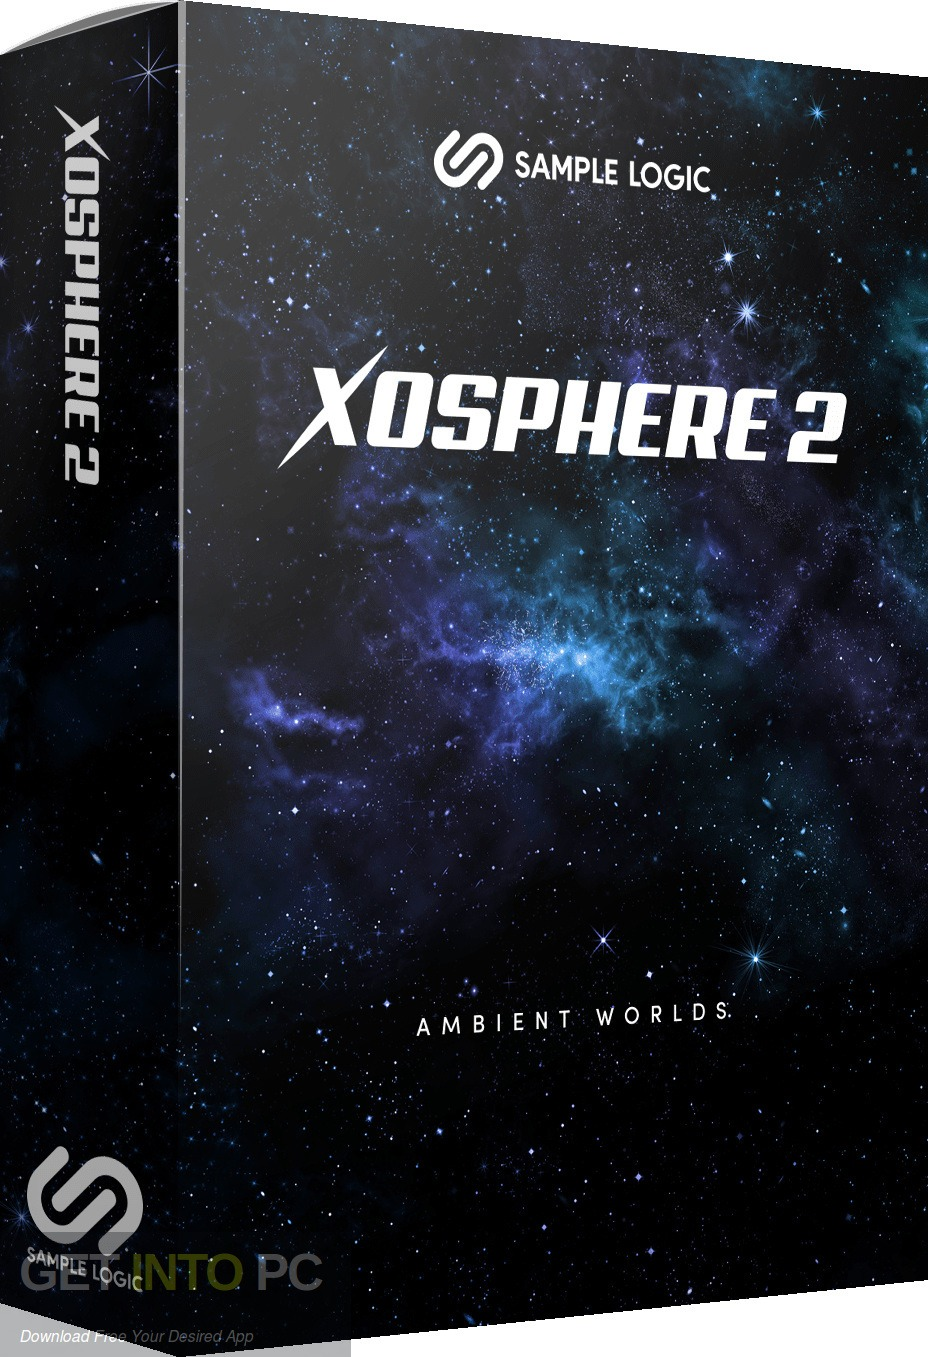 Sample Logic - Library Xosphere 2 Kontakt Free Download-GetintoPC.com